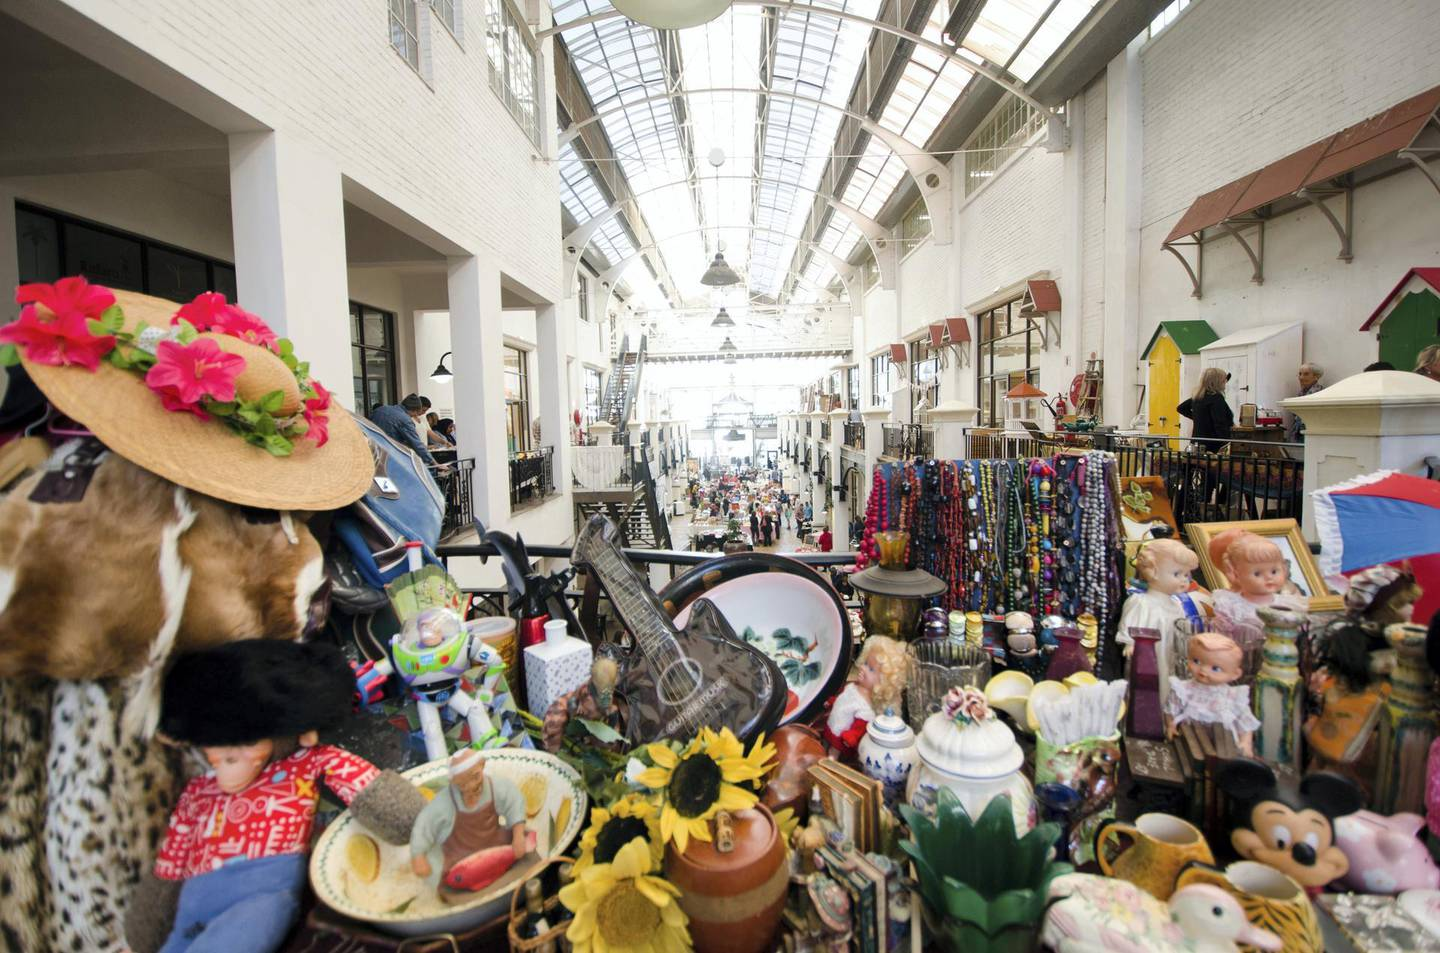 CTT Palms Market in Woodstock, Cape Town, South Africa. Lisa Burnell / Cape Town Tourism